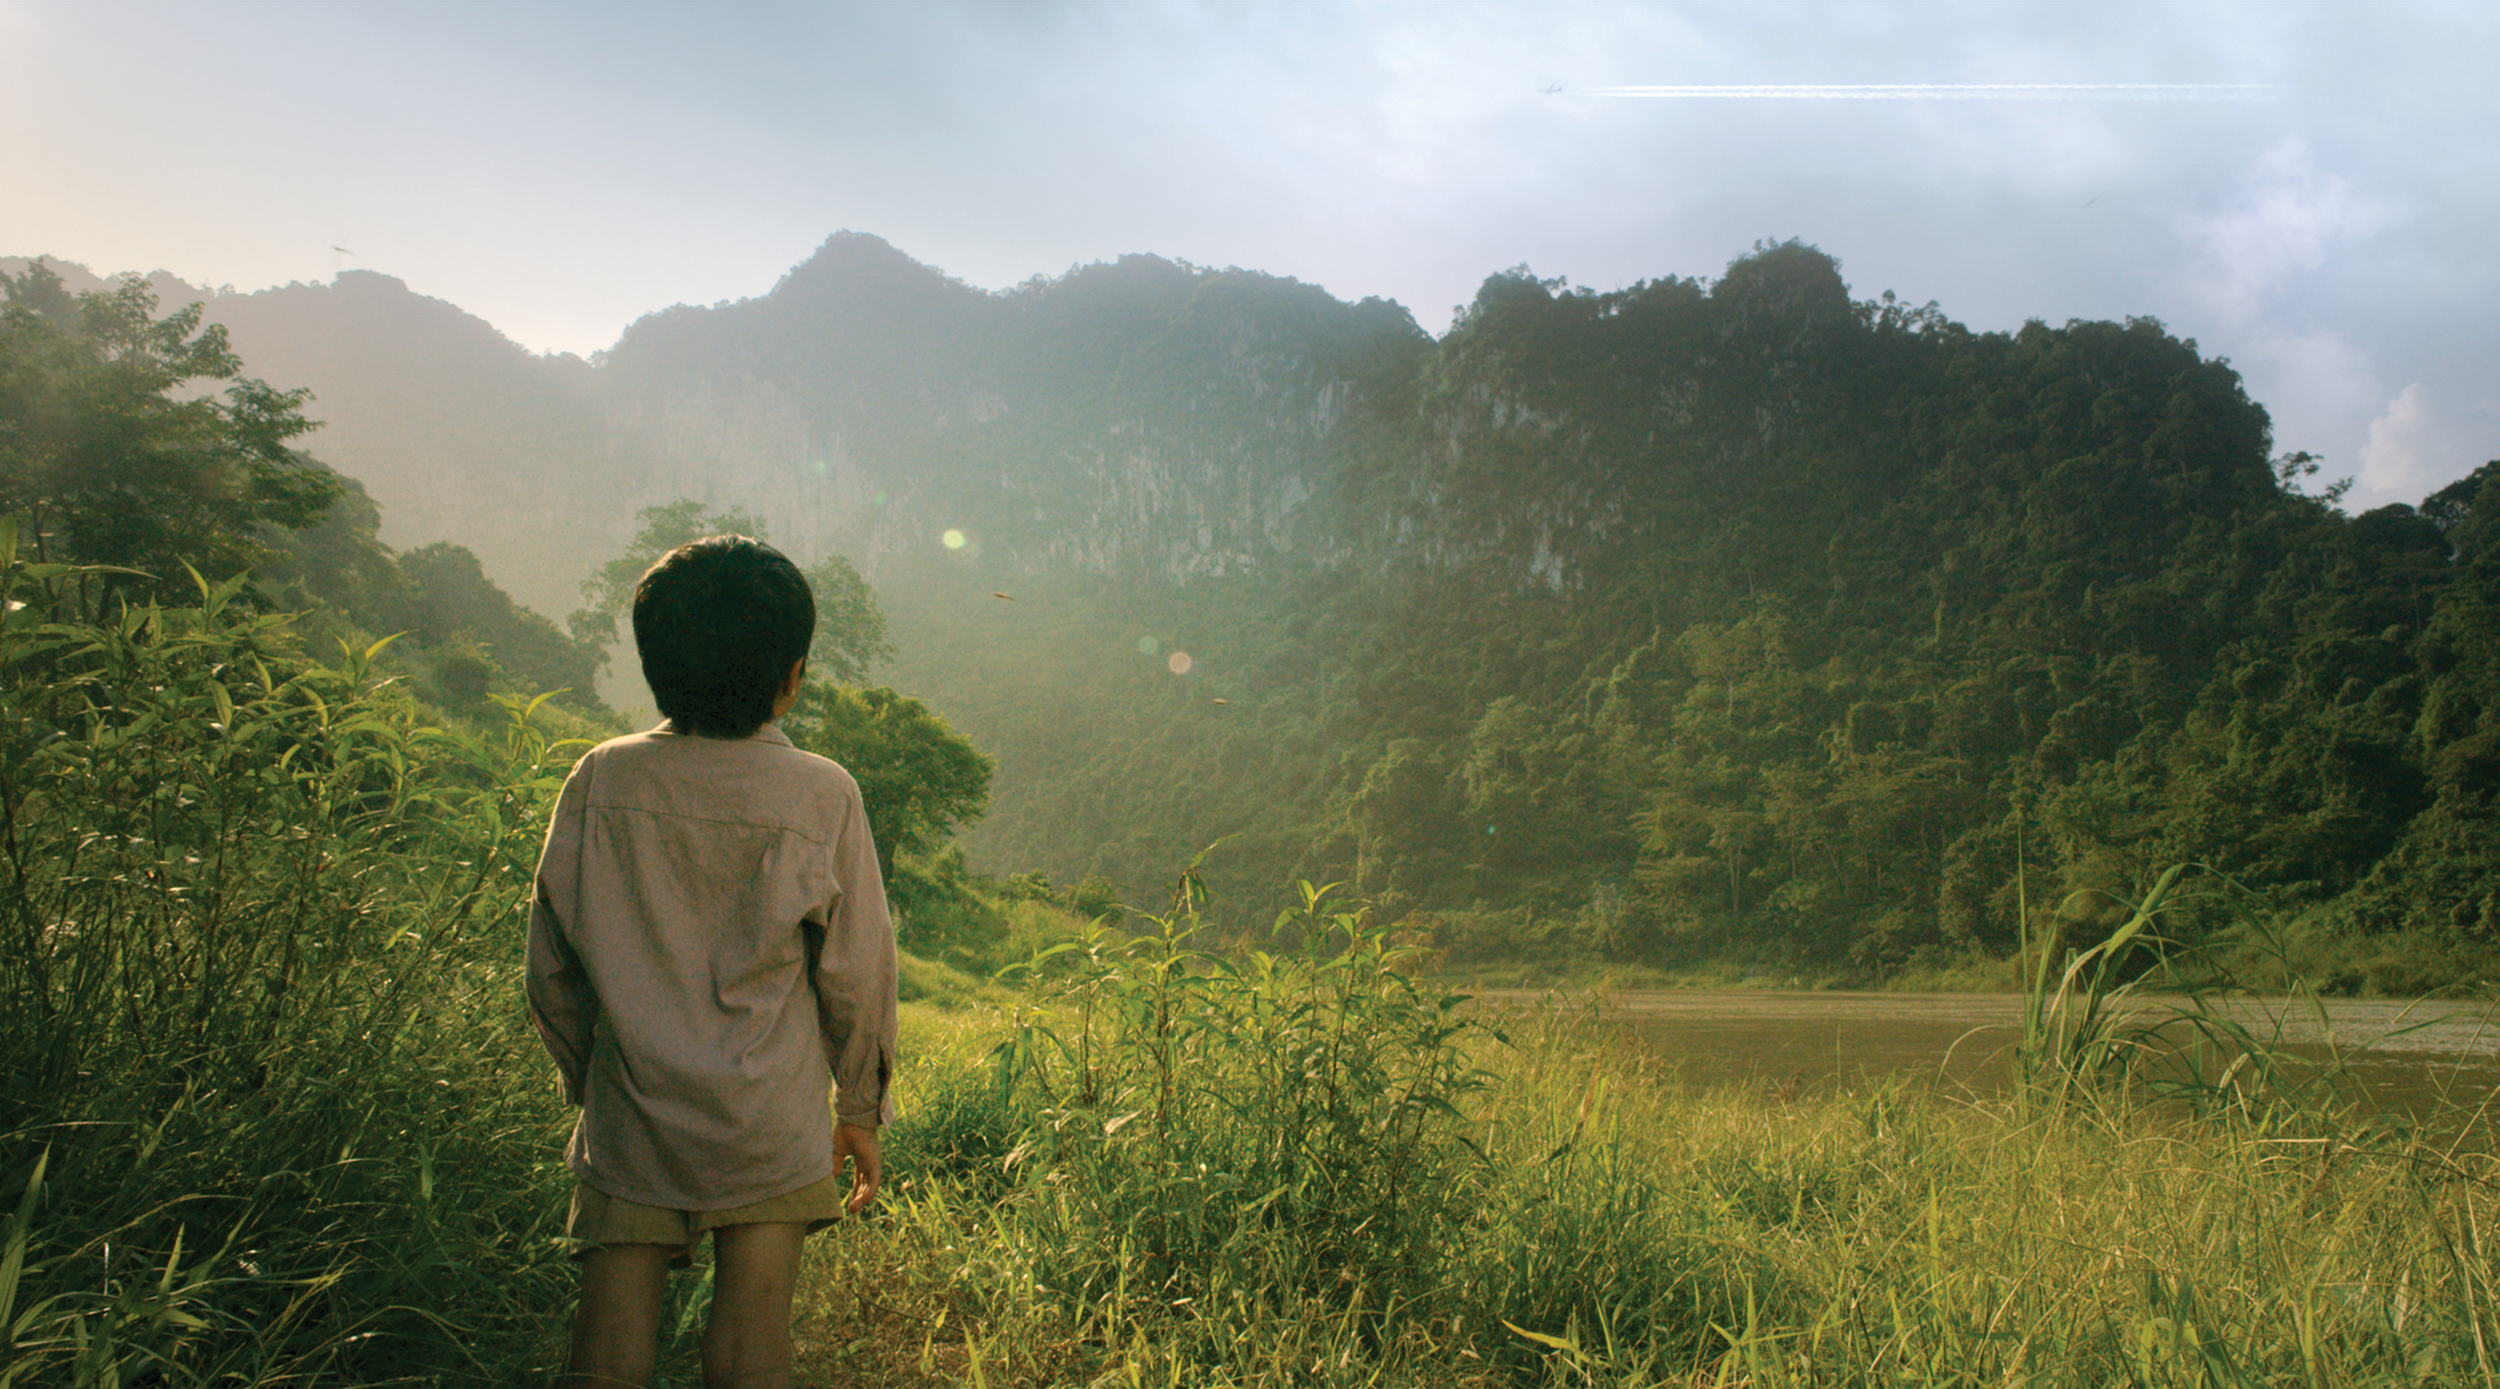 FATHER AND SUN - VIETNAM   Official Oscars Submission for Foreign Language Film Award